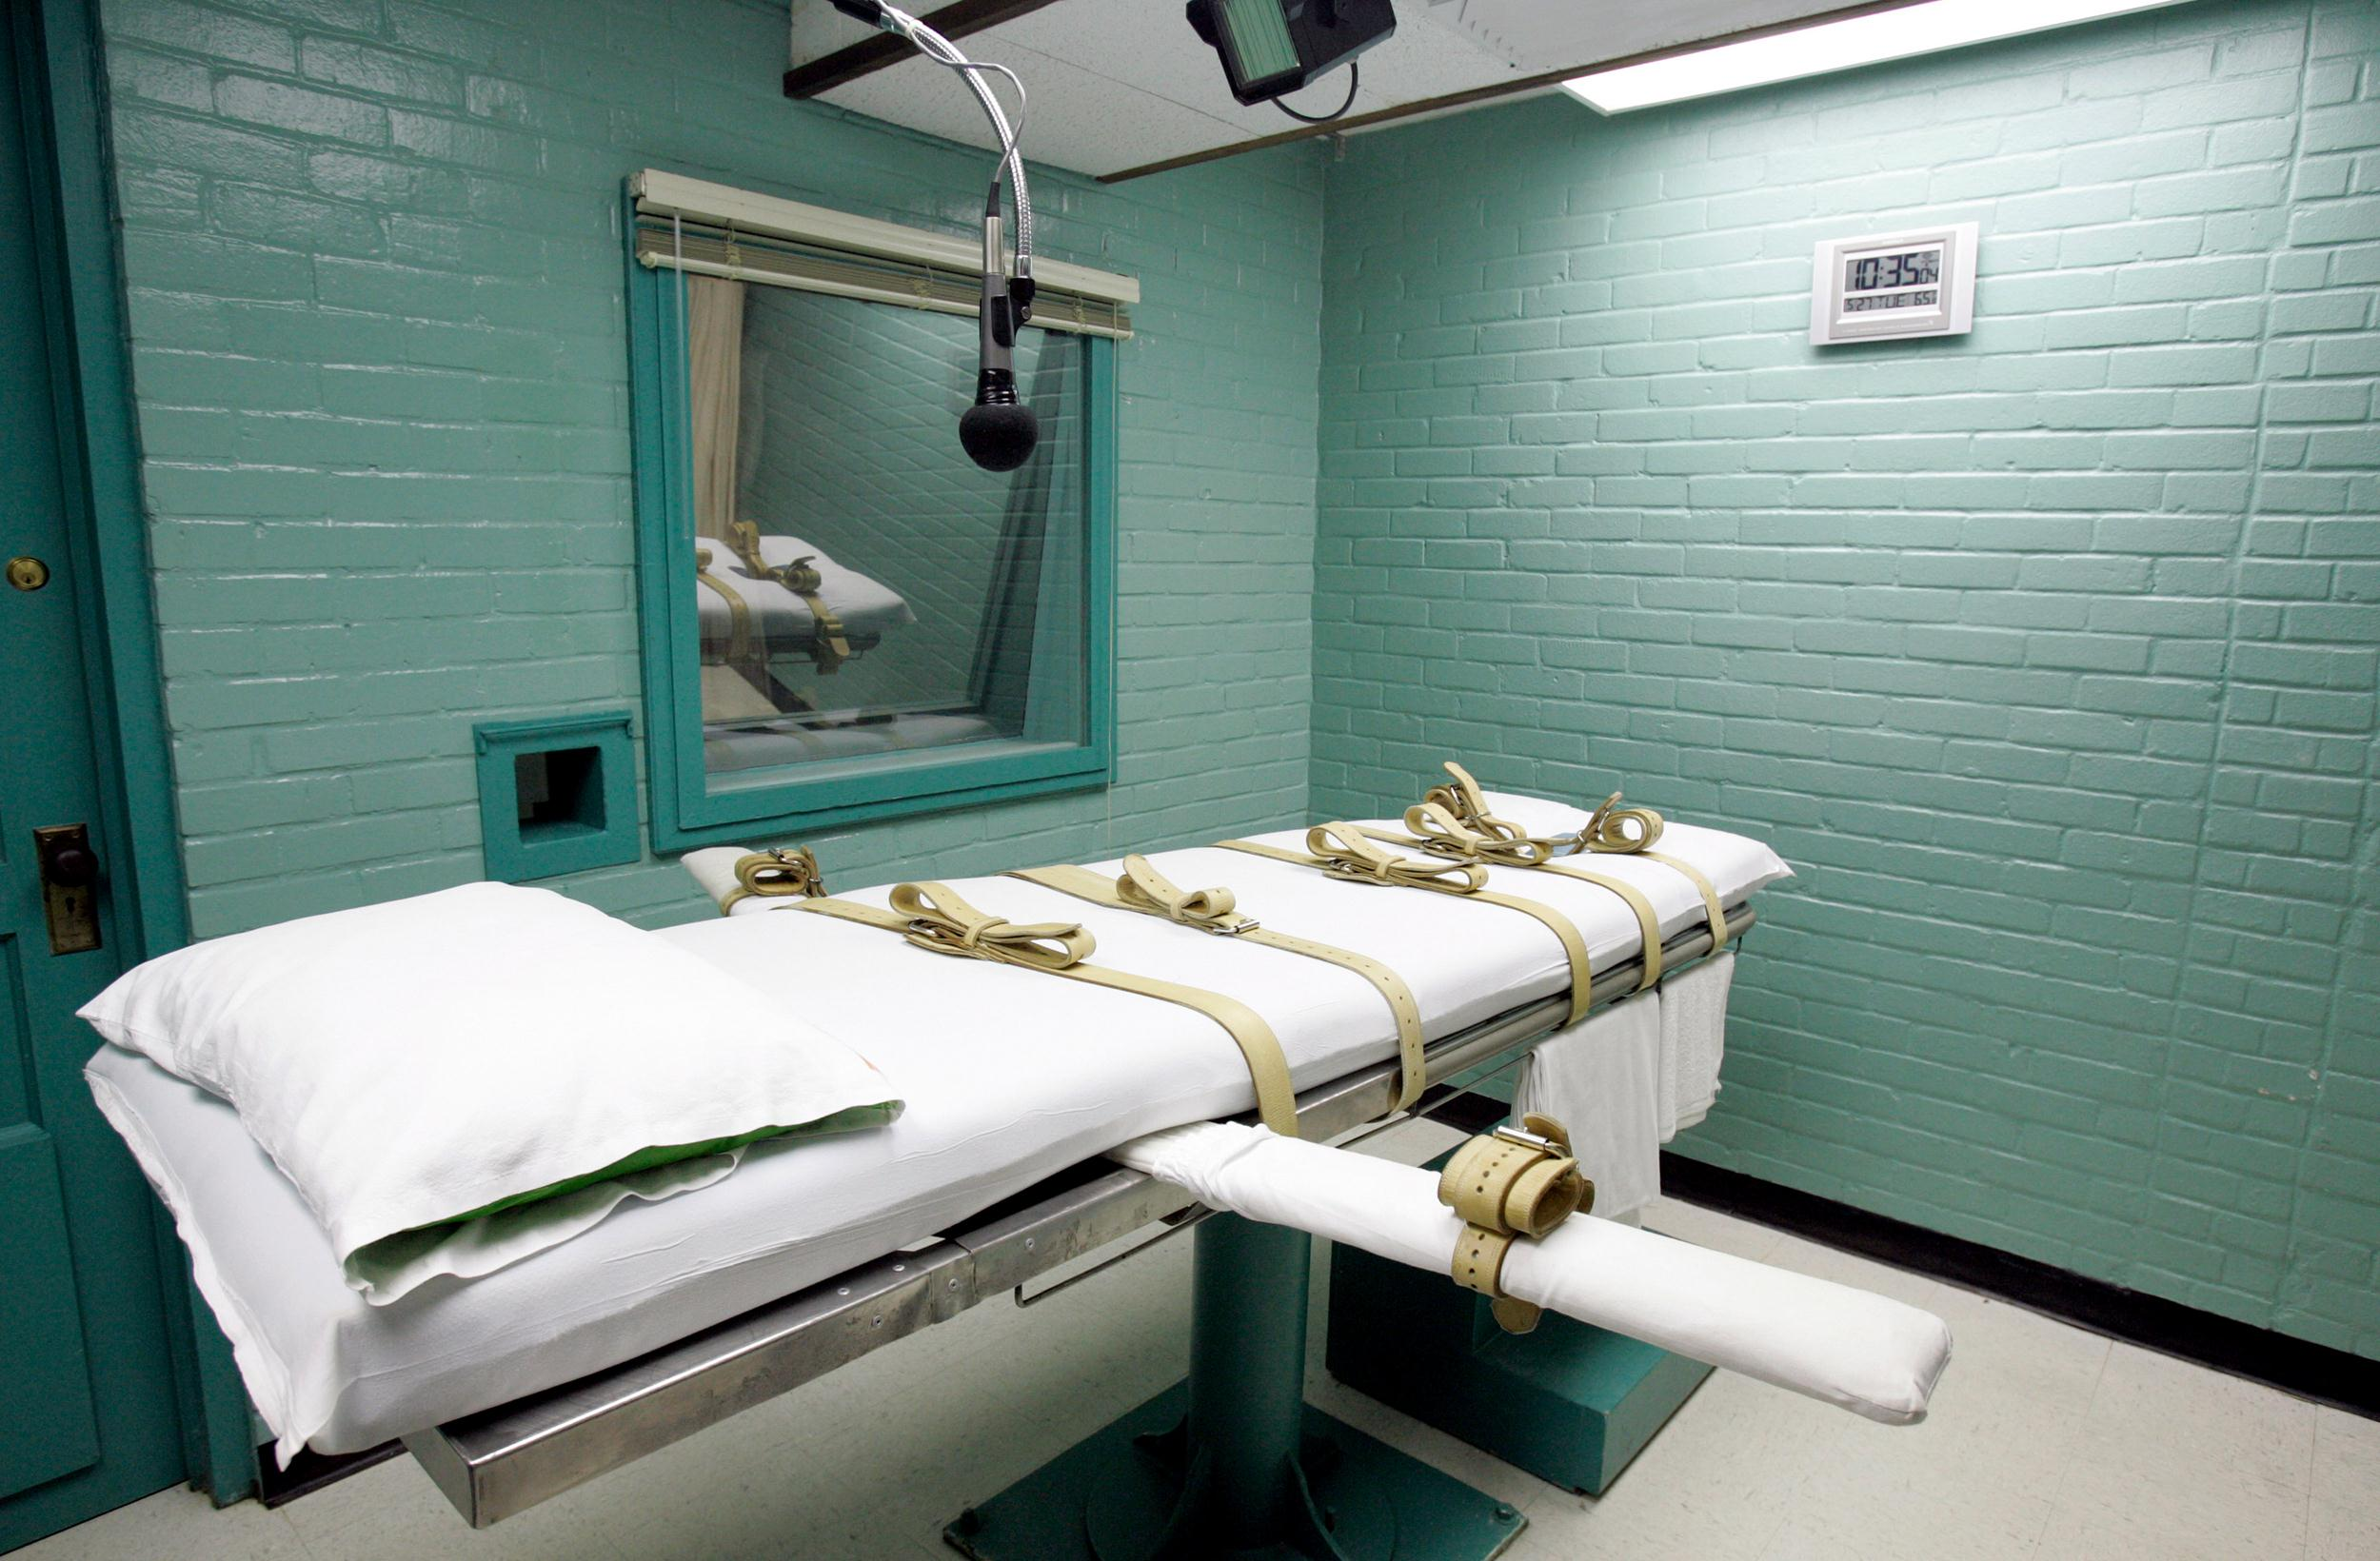 Image: The gurney in the death chamber is shown in this May 27, 2008 file photo from Huntsville, Texas.